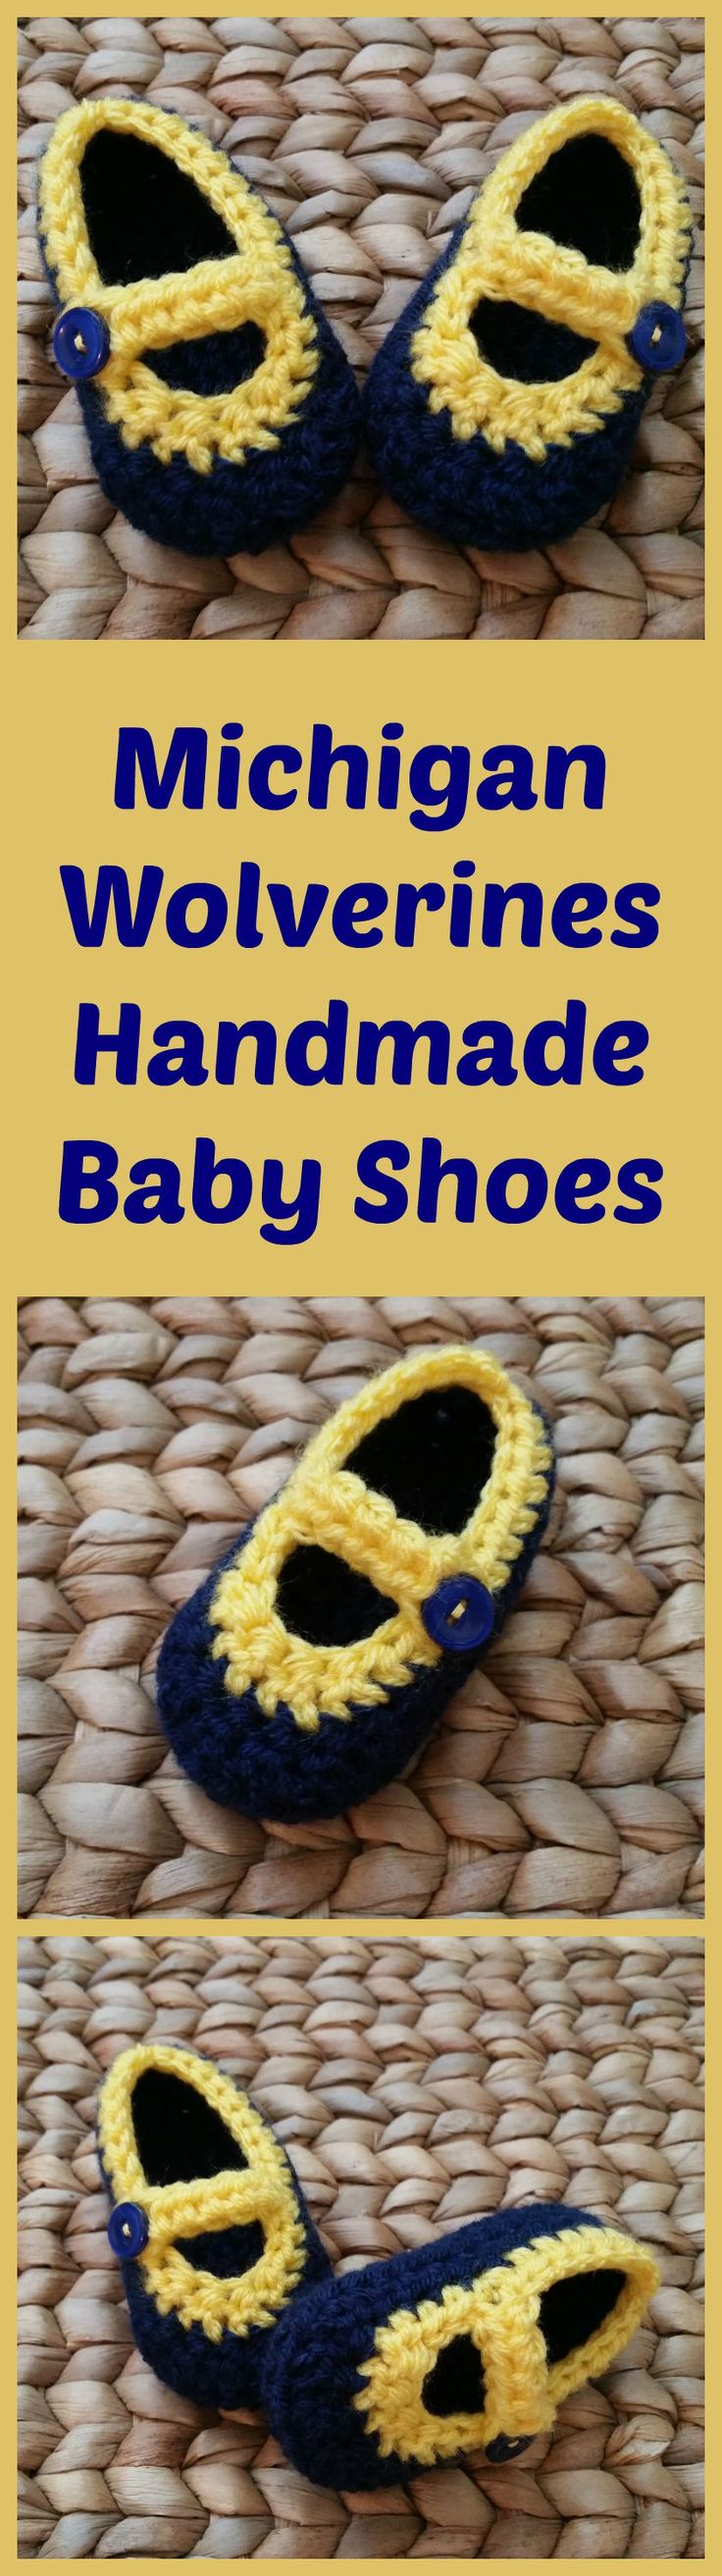 University of Michigan (U of M) Wolverine colors handmade baby shoes. Crocheted with deep blue and maize yarn, with blue buttons. Free shipping included with all orders. Great for U of M football fans!